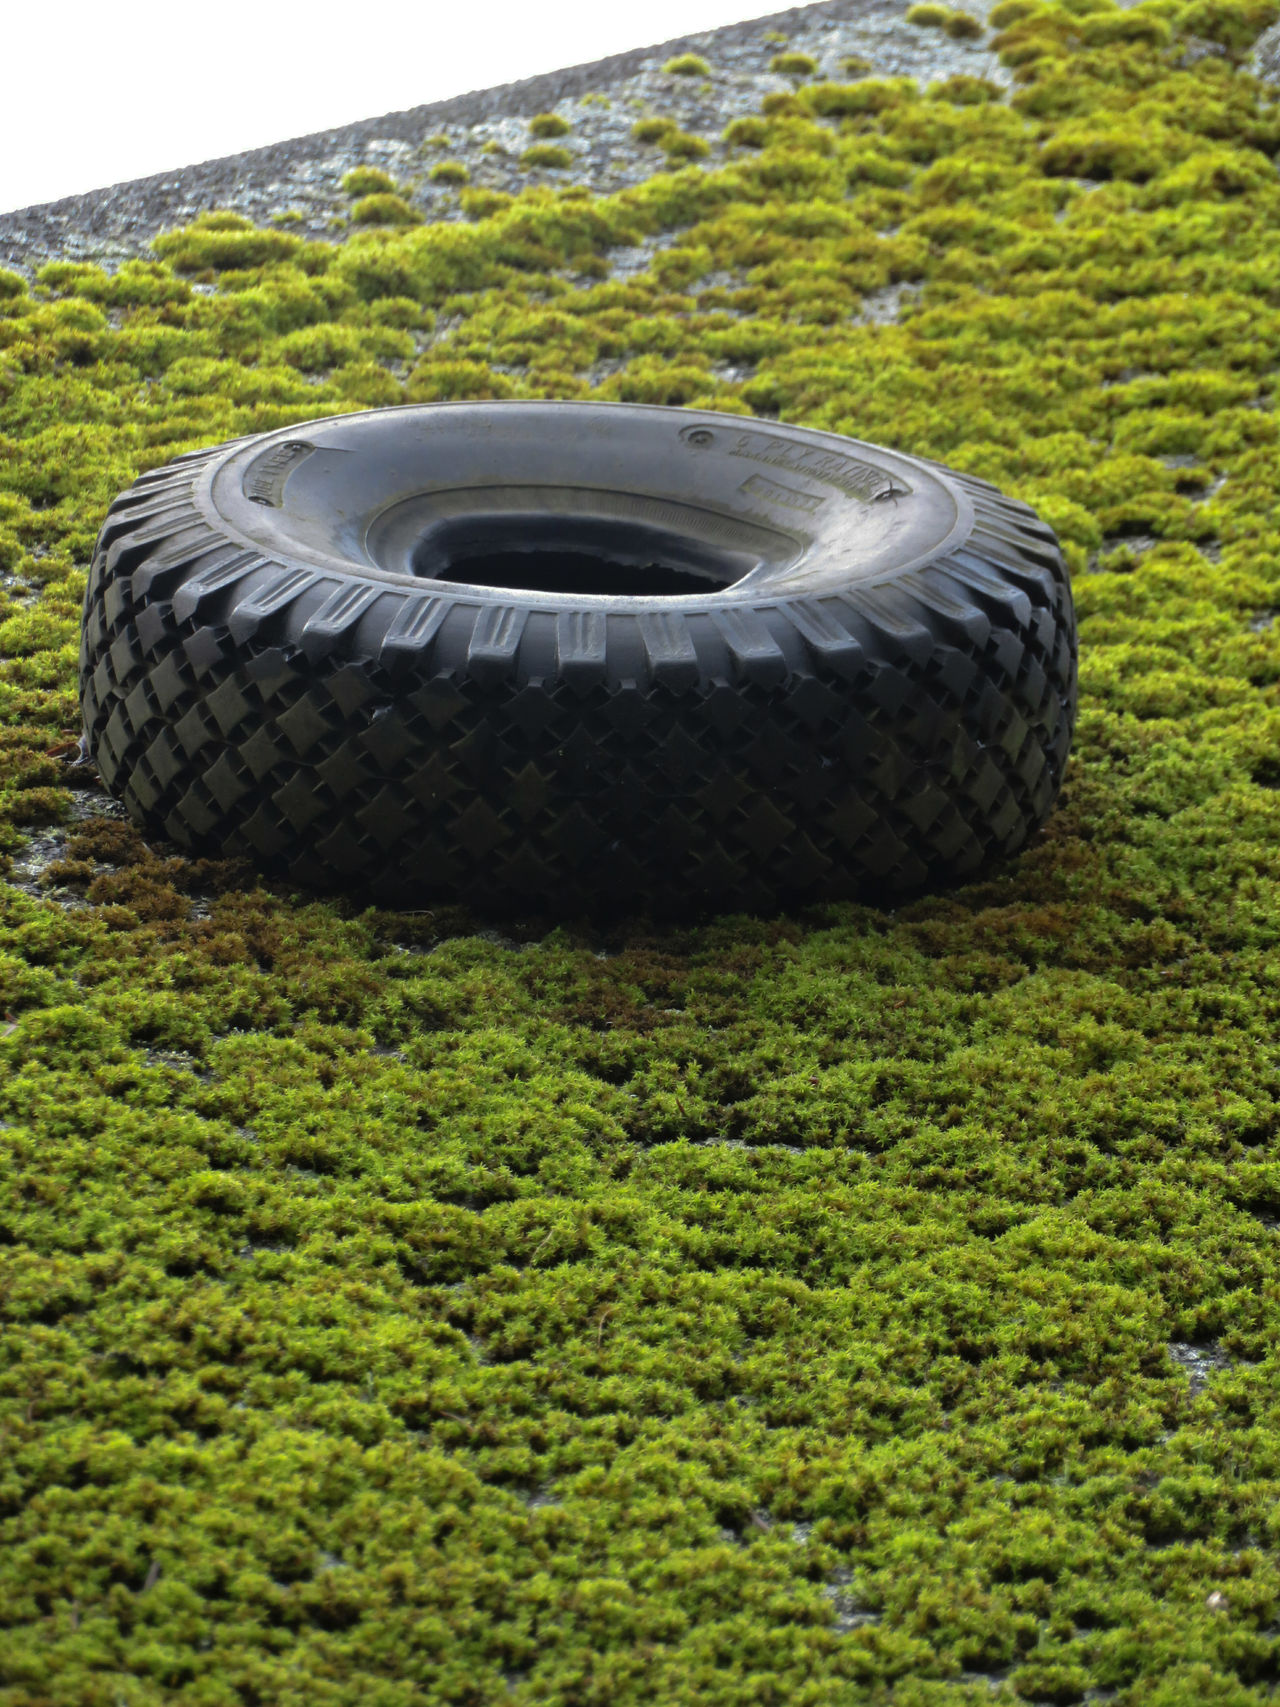 Nature Moss Rooftop Tire Close-up Outdoors Green Color